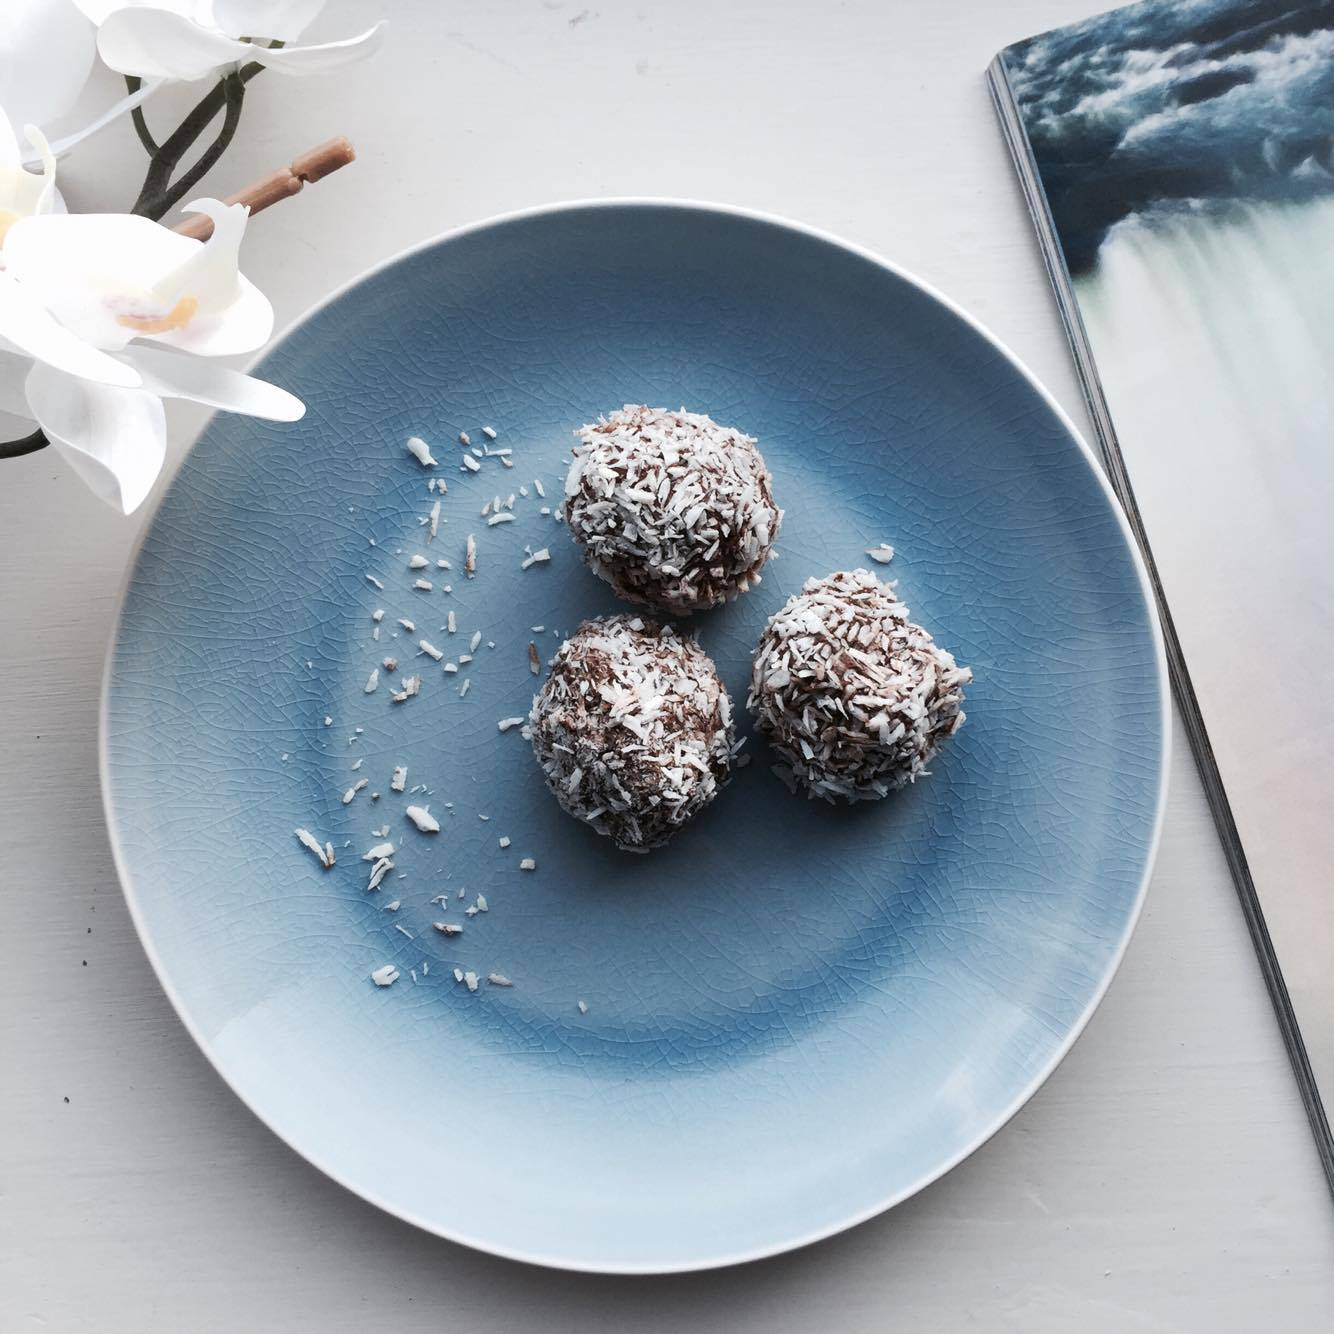 Malibu & chocolate balls: easy gluten-free vegan recipe